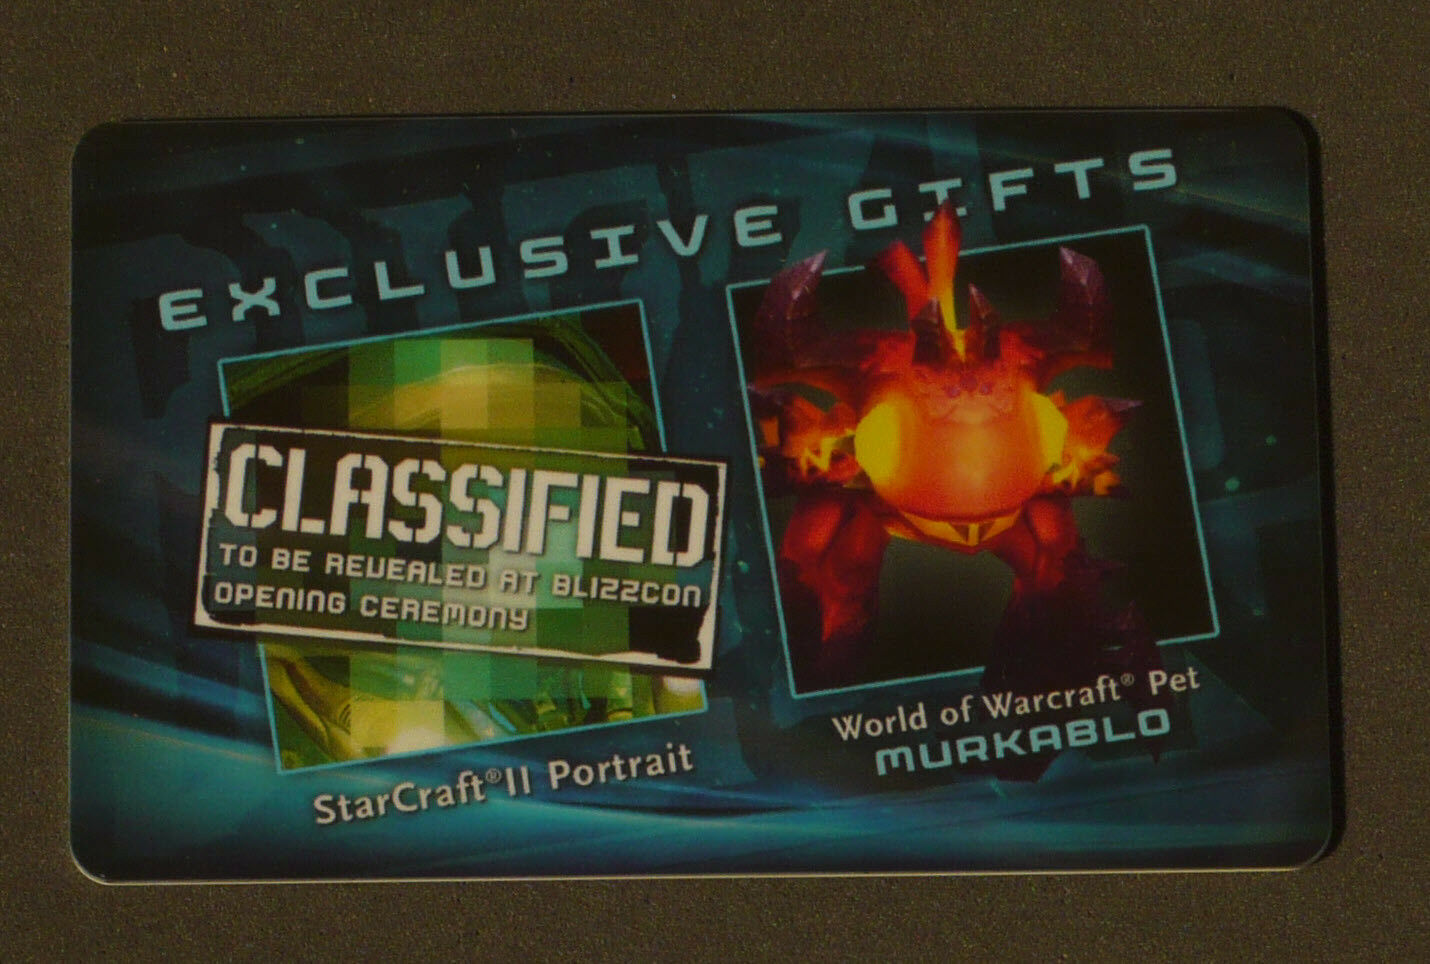 BlizzCon 2011 loot card - World of Warcraft Murkablo Pet - UNSCRATCHED   UNUSED